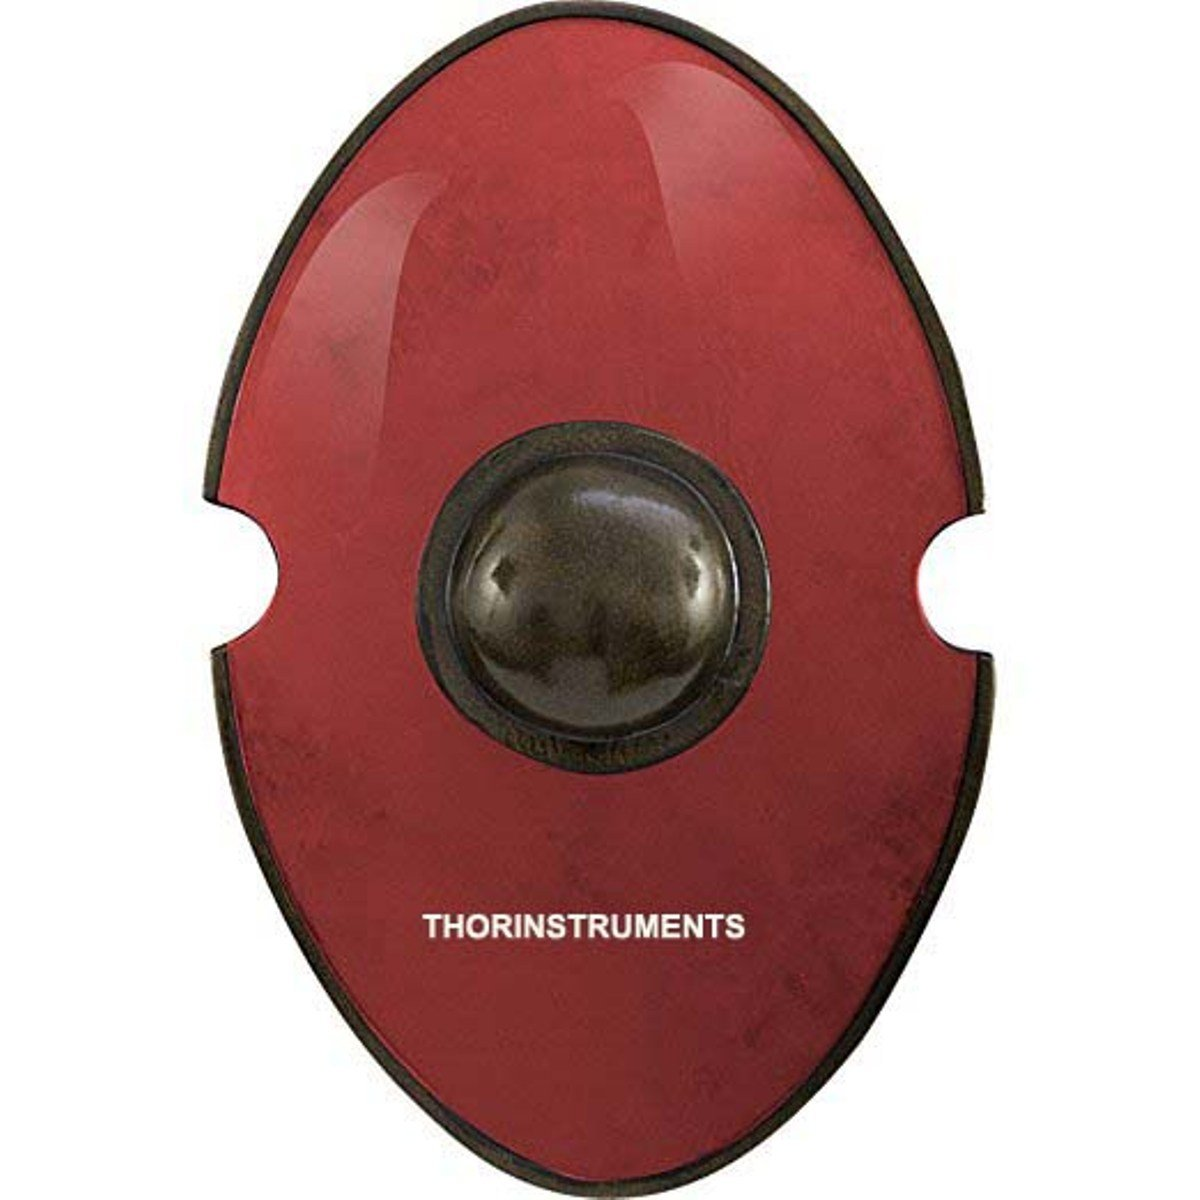 THORINSTRUMENTS Red Elliptical Larp Shield Red Renactment For Battle